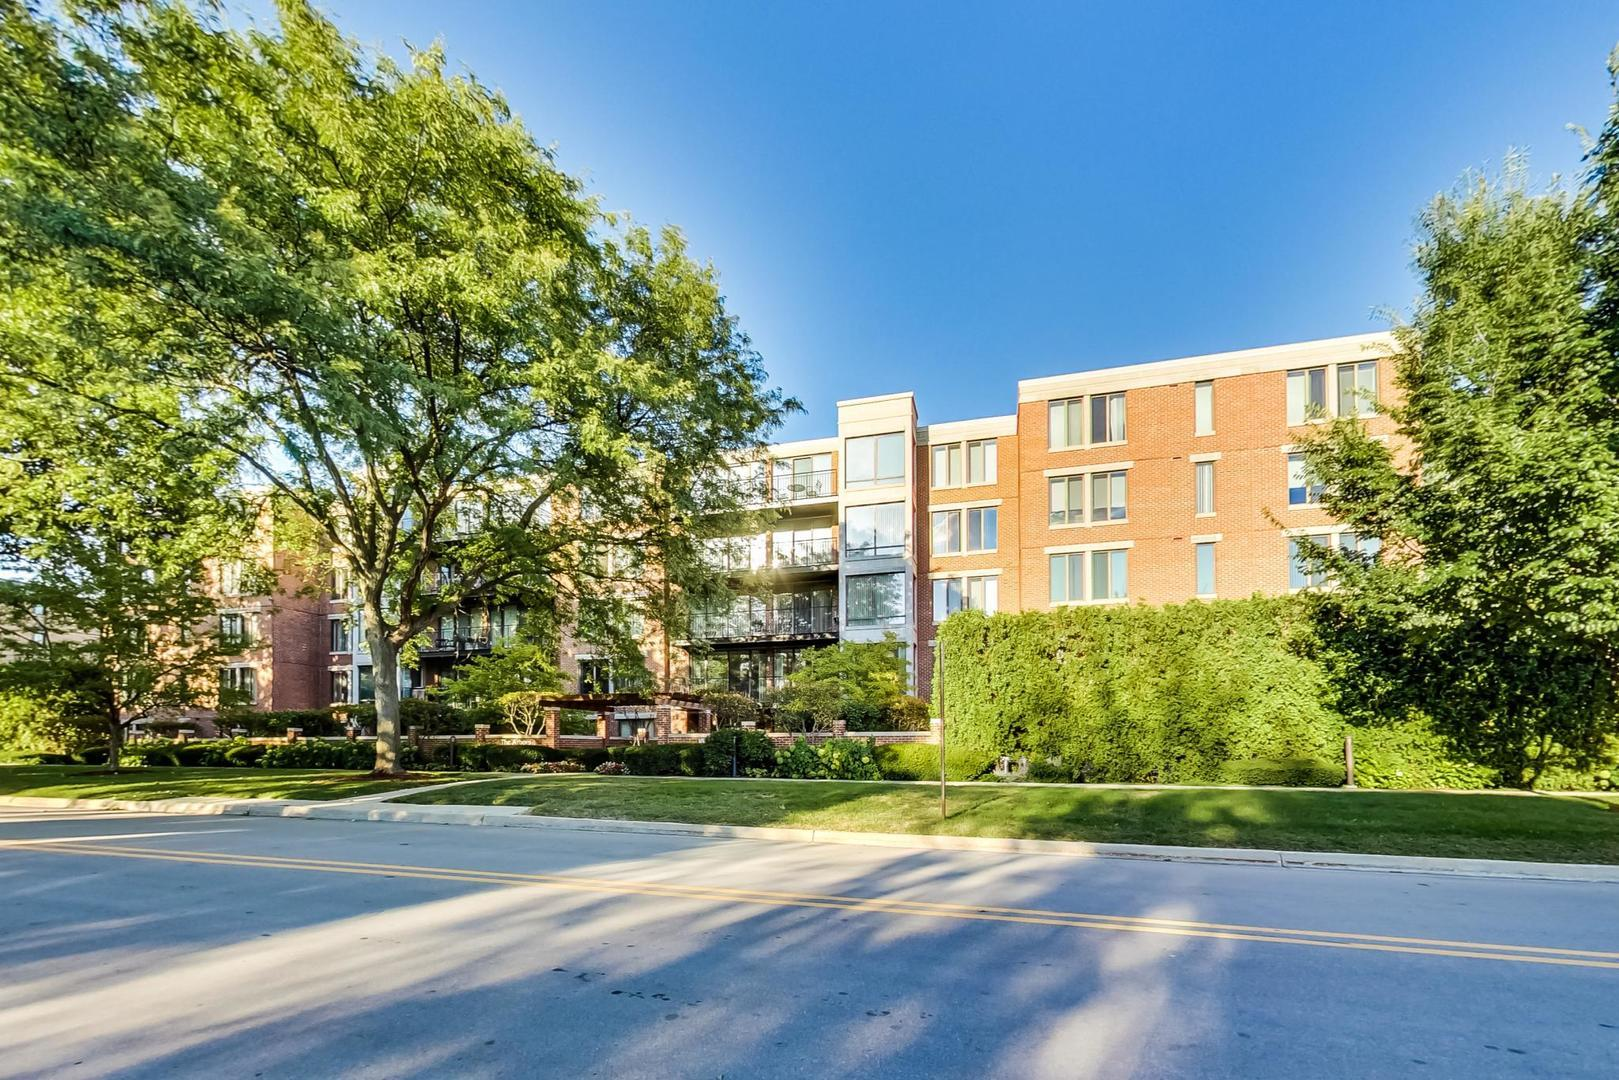 1633 2nd Street #206, Highland Park, IL 60035 - #: 10851794